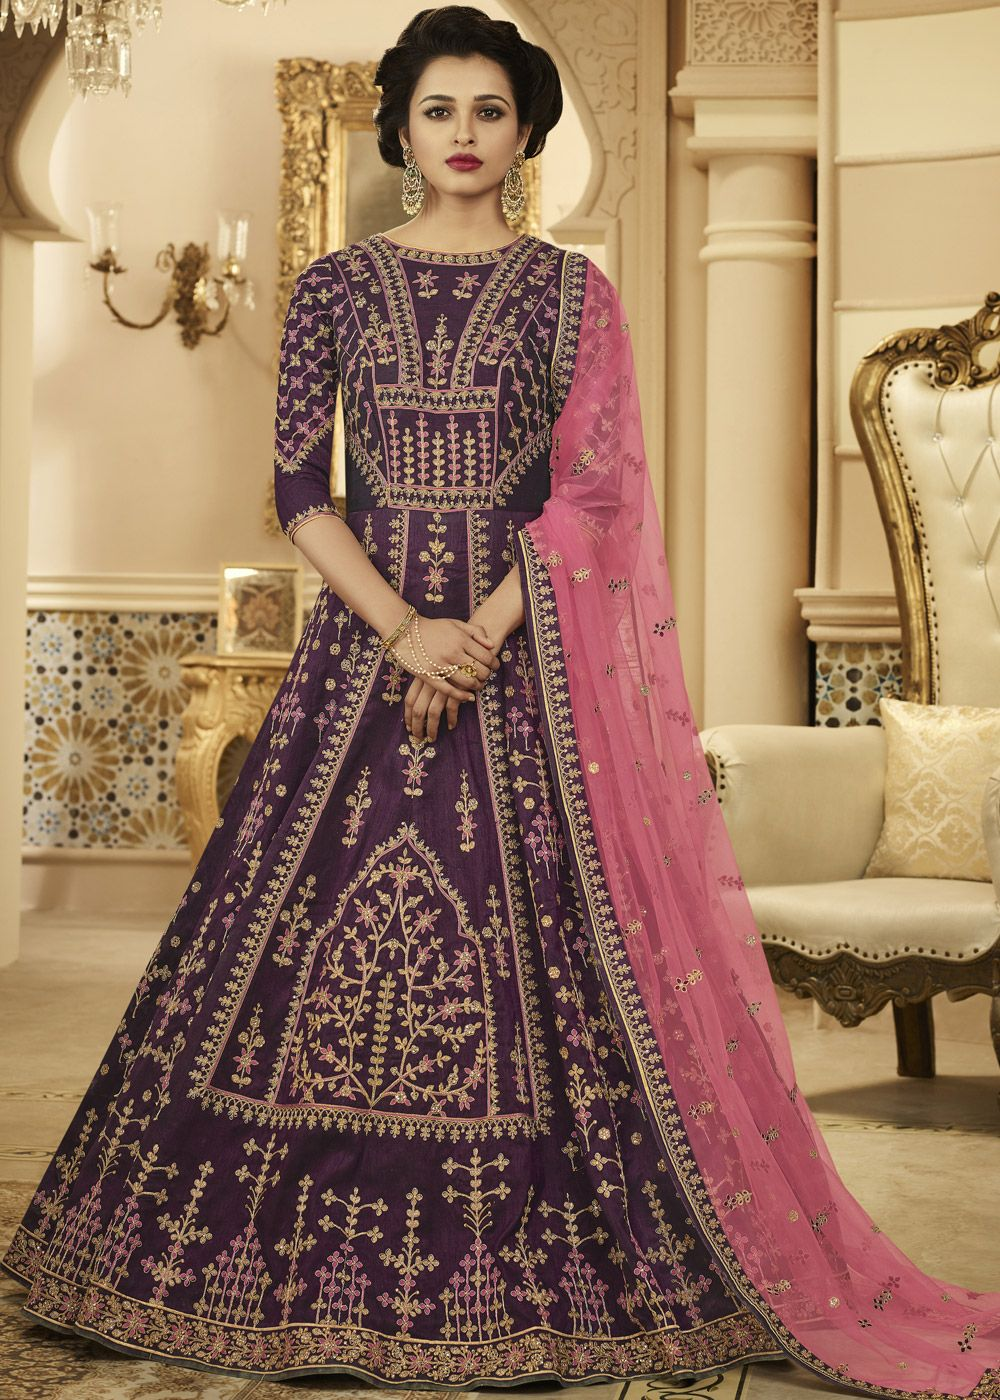 498e3299d7 Showcasing a purple floor length anarkali kameez in silk beautified with  zari cord and resham embroidery work all over it enhanced by sparkly stone  ...